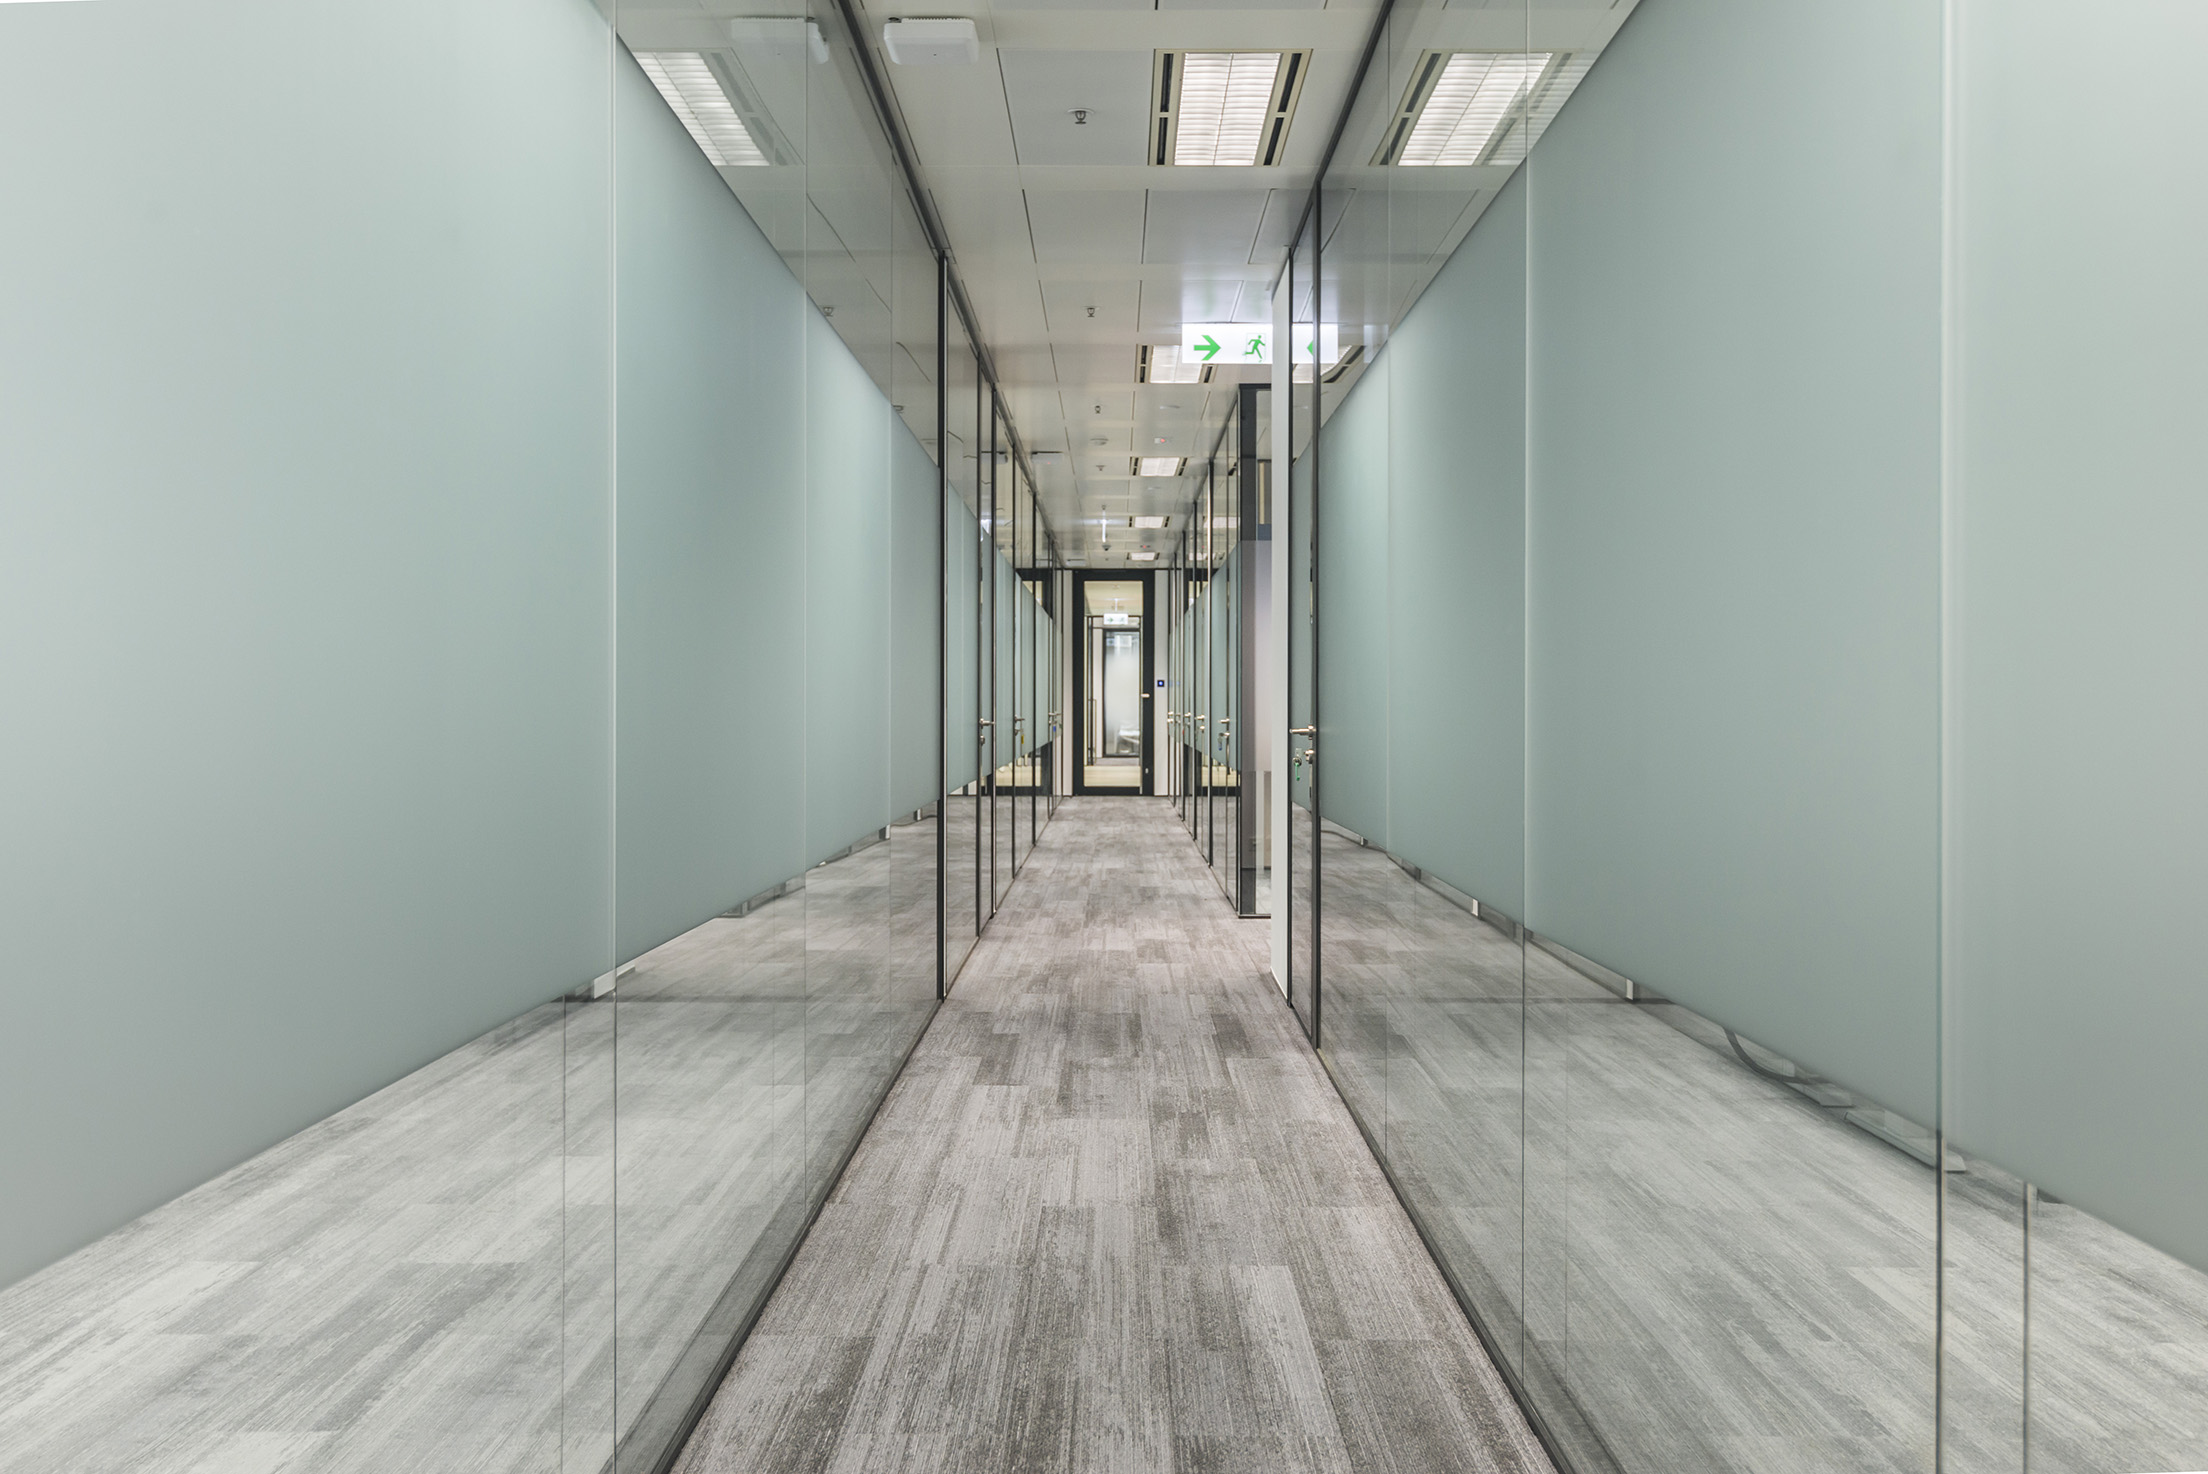 jeb-partitions-x-series-office-hk-02.jpg